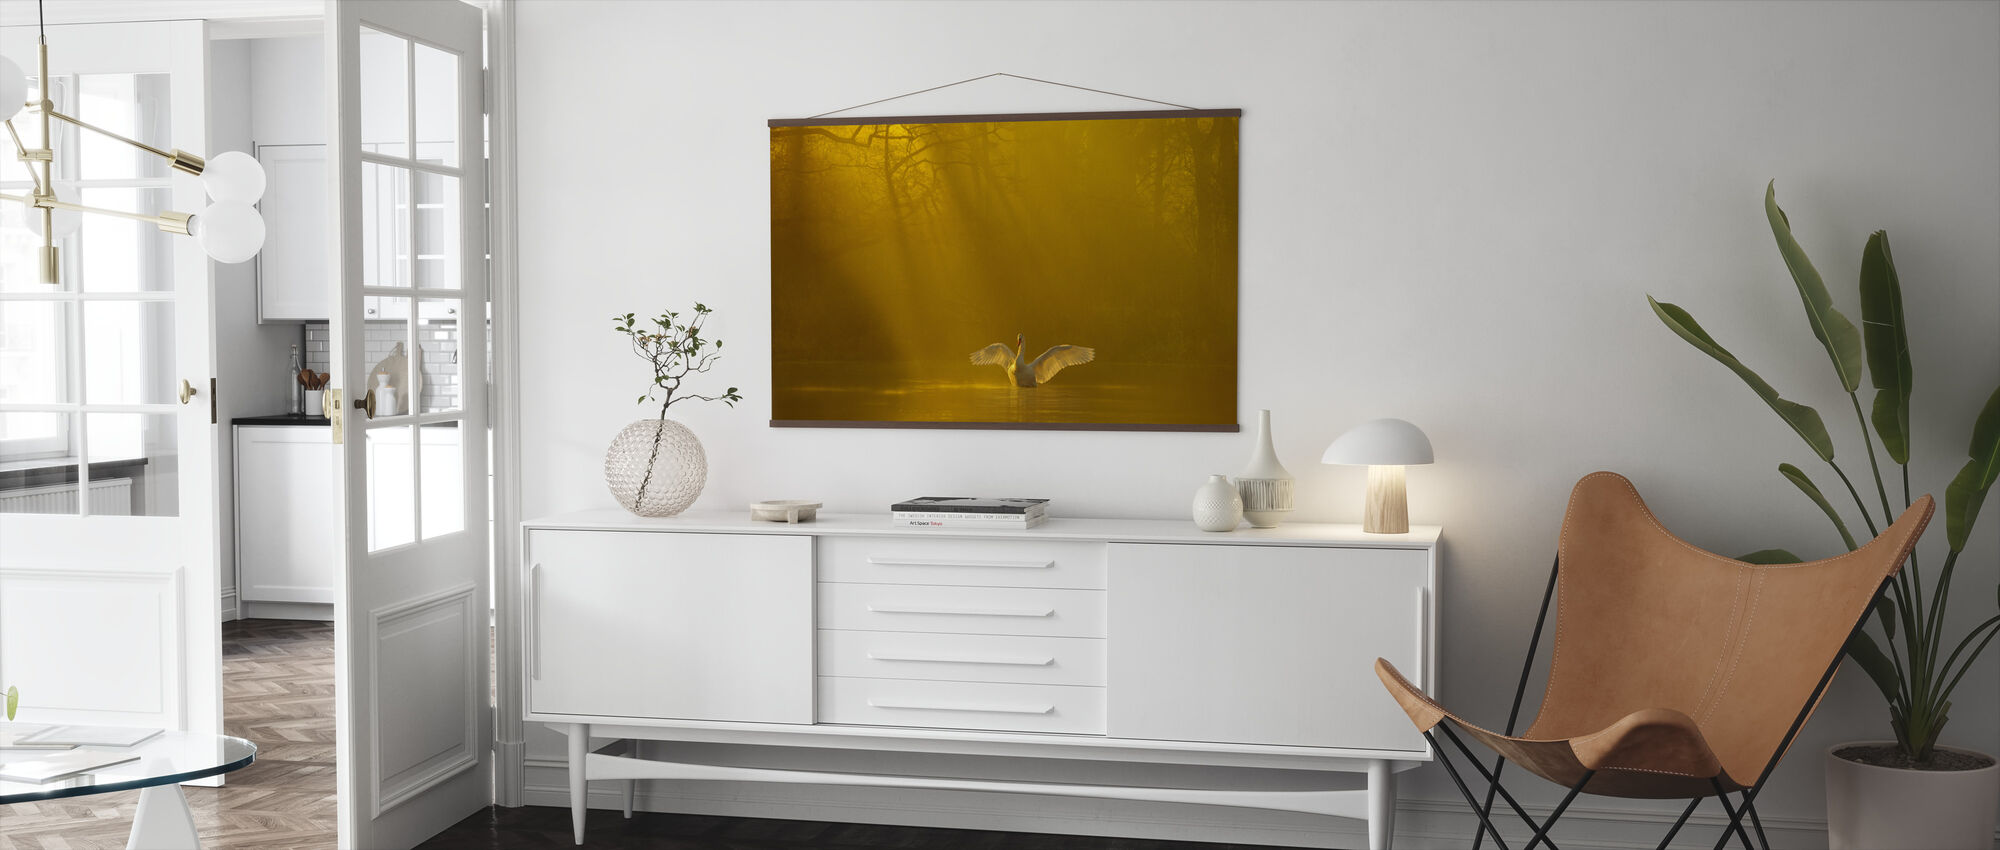 Golden Swan Lake - Poster - Living Room